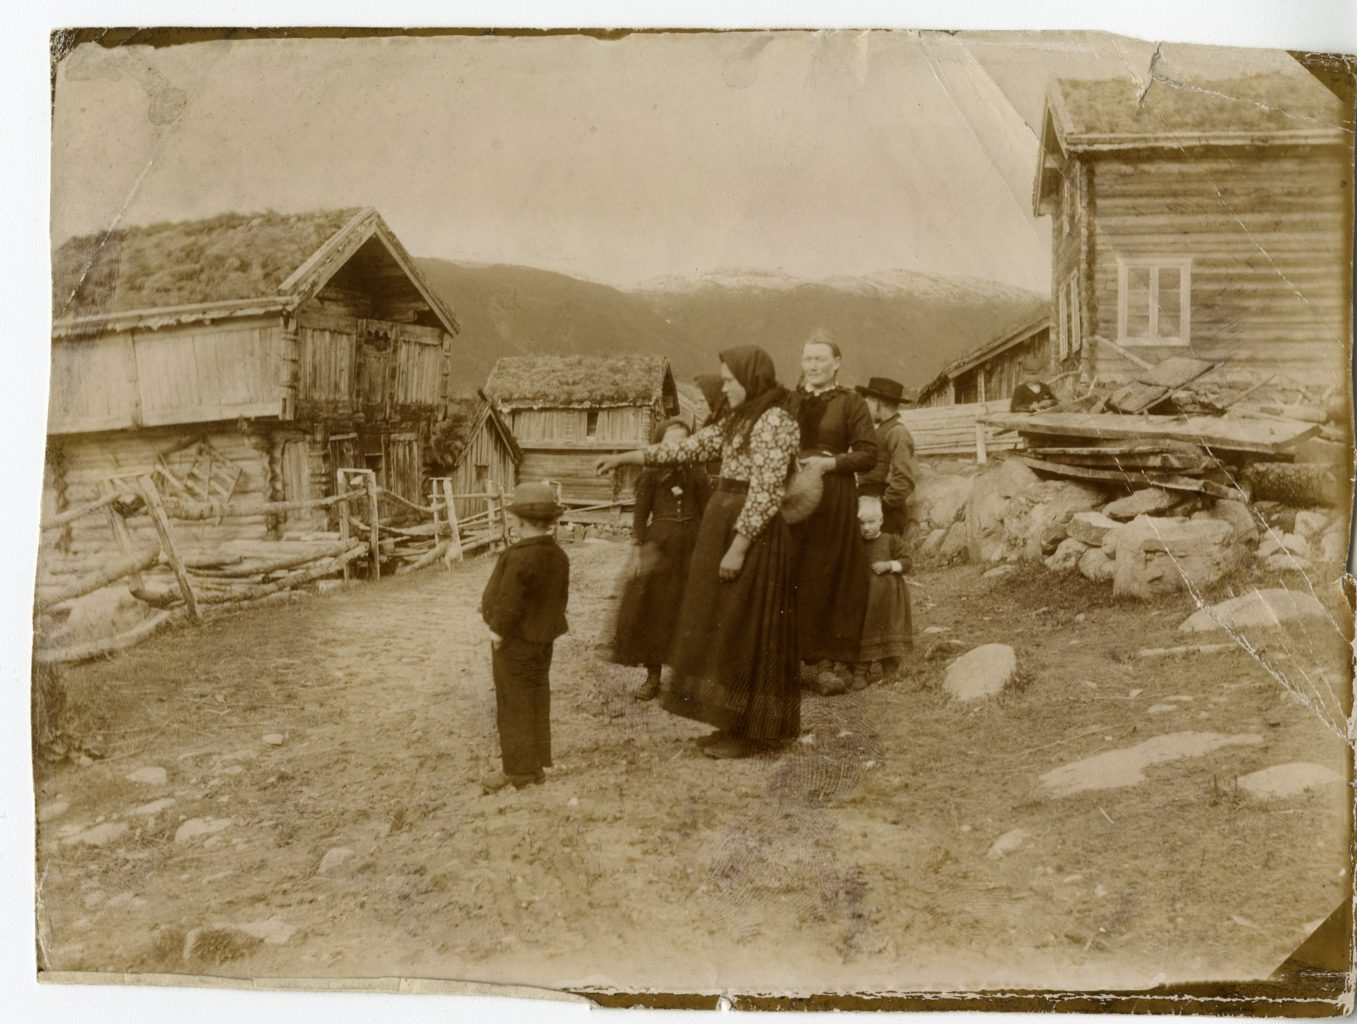 Three adults and four children stand on the road, Midtgarden